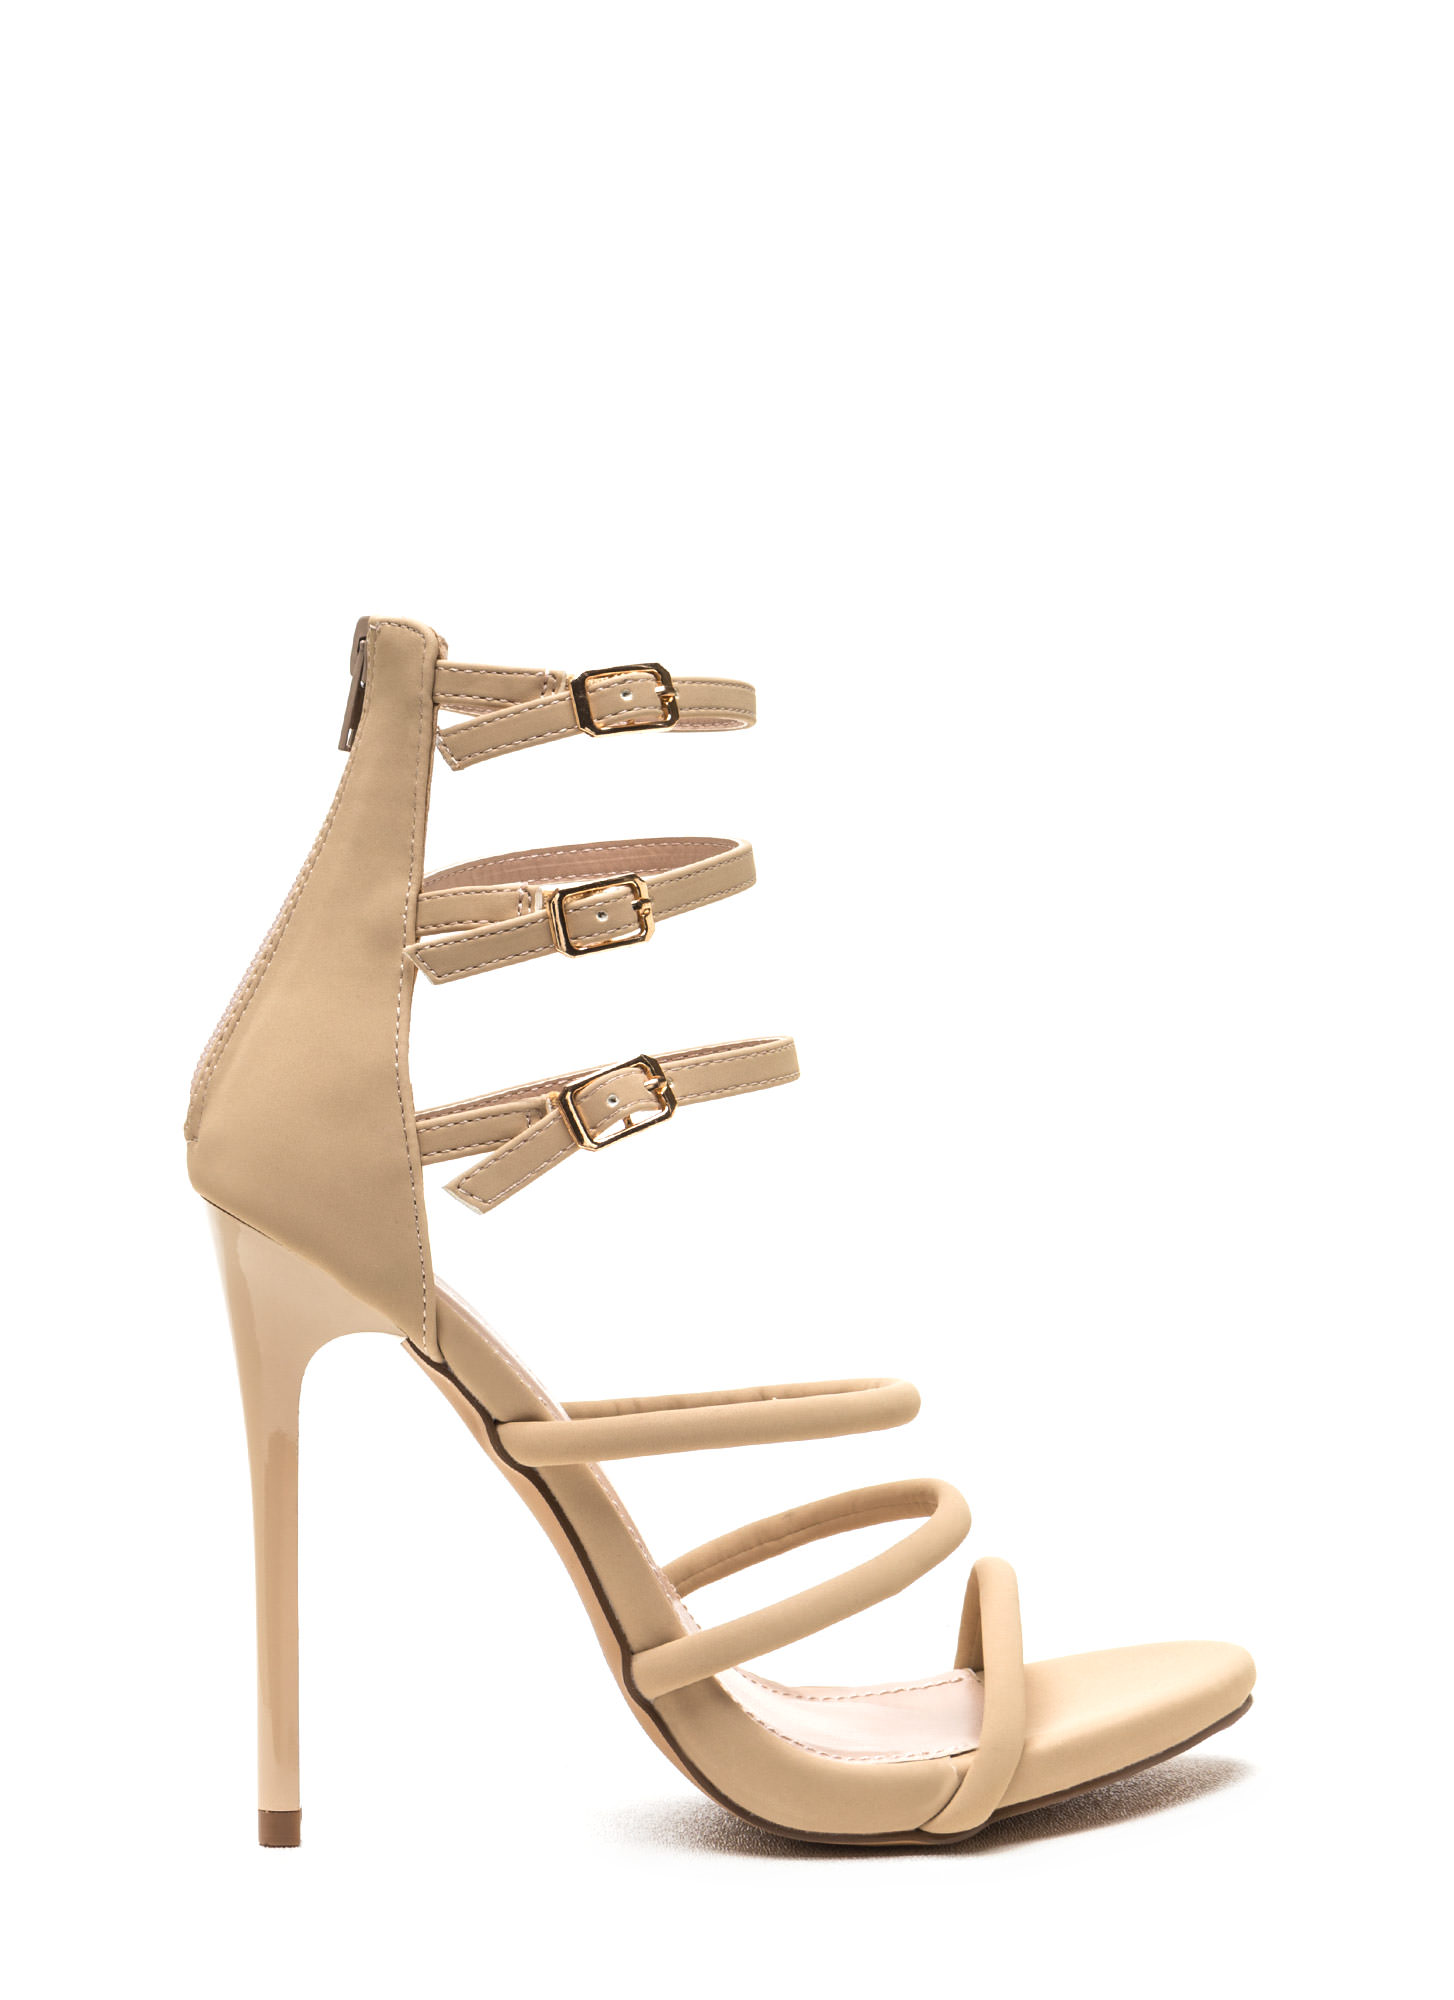 Six 'N Match Caged Faux Nubuck Heels NUDE